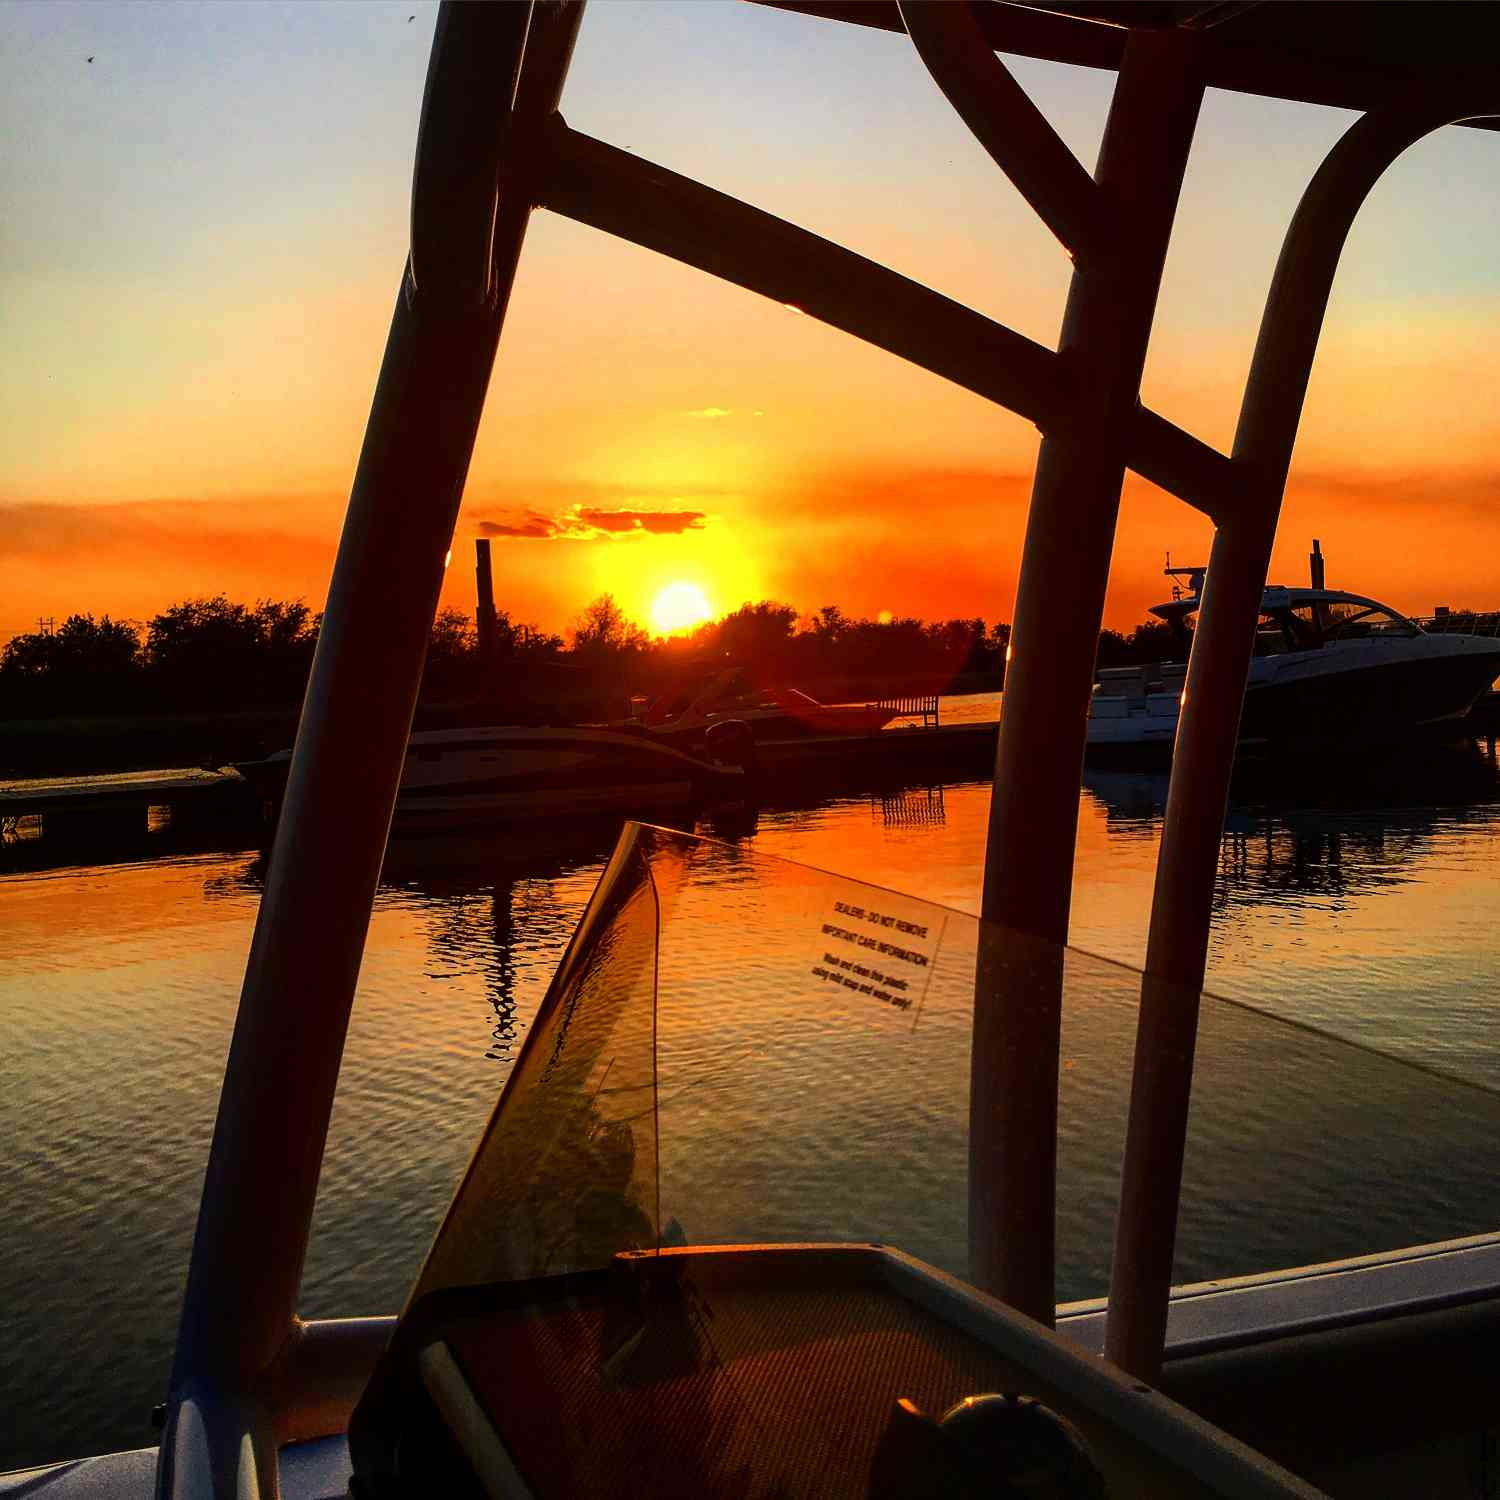 Title: Sportman Sunset - On board their Sportsman Heritage 231 Center Console - Location: Daniel Island Marina. Participating in the Photo Contest #SportsmanJune2018